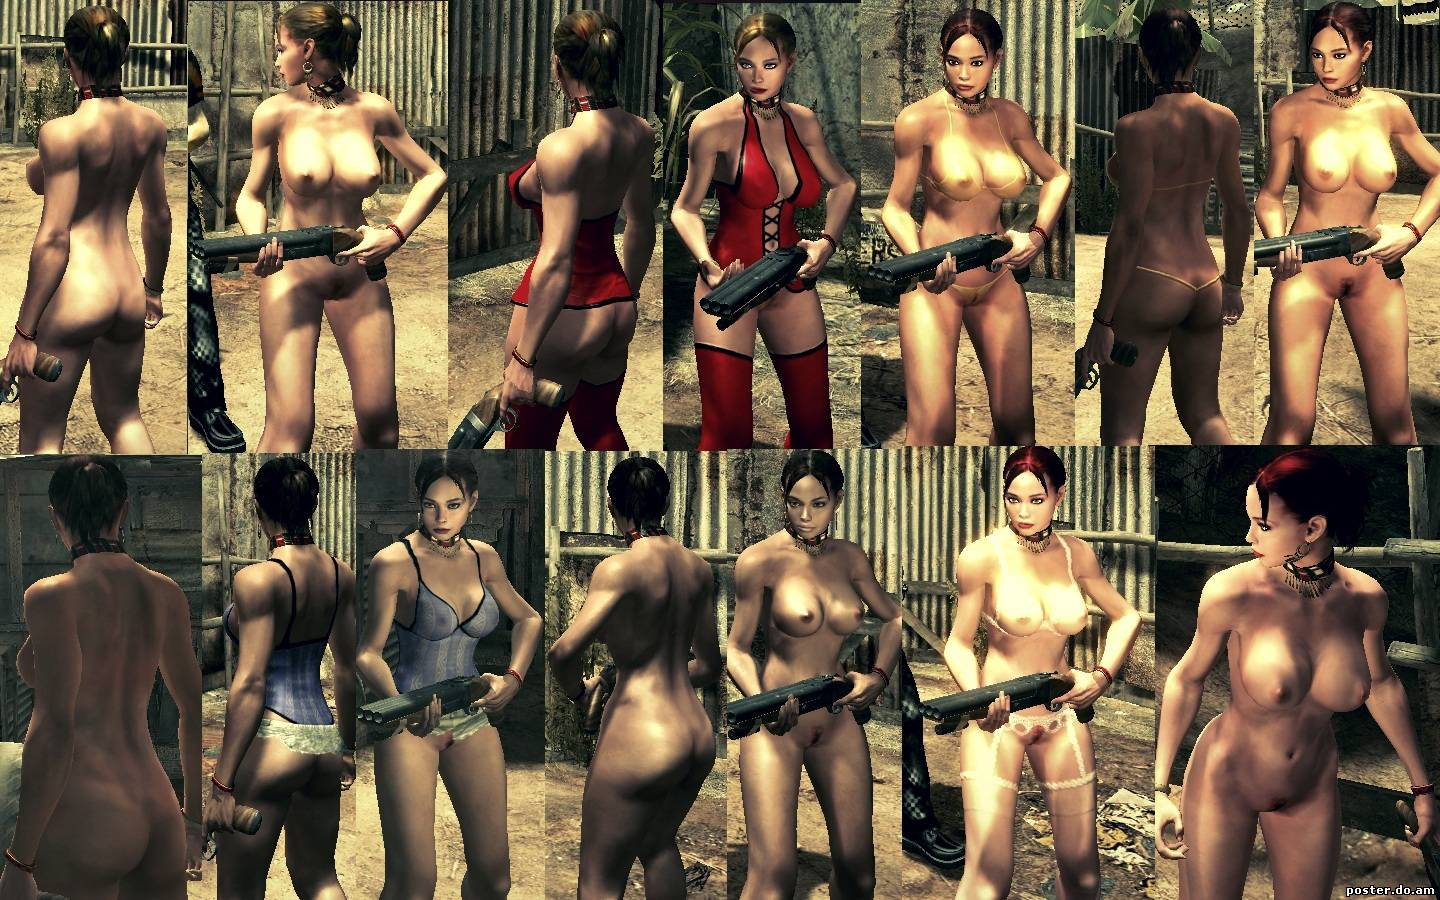 Resident evil all parts nude mod rar nudes gallery